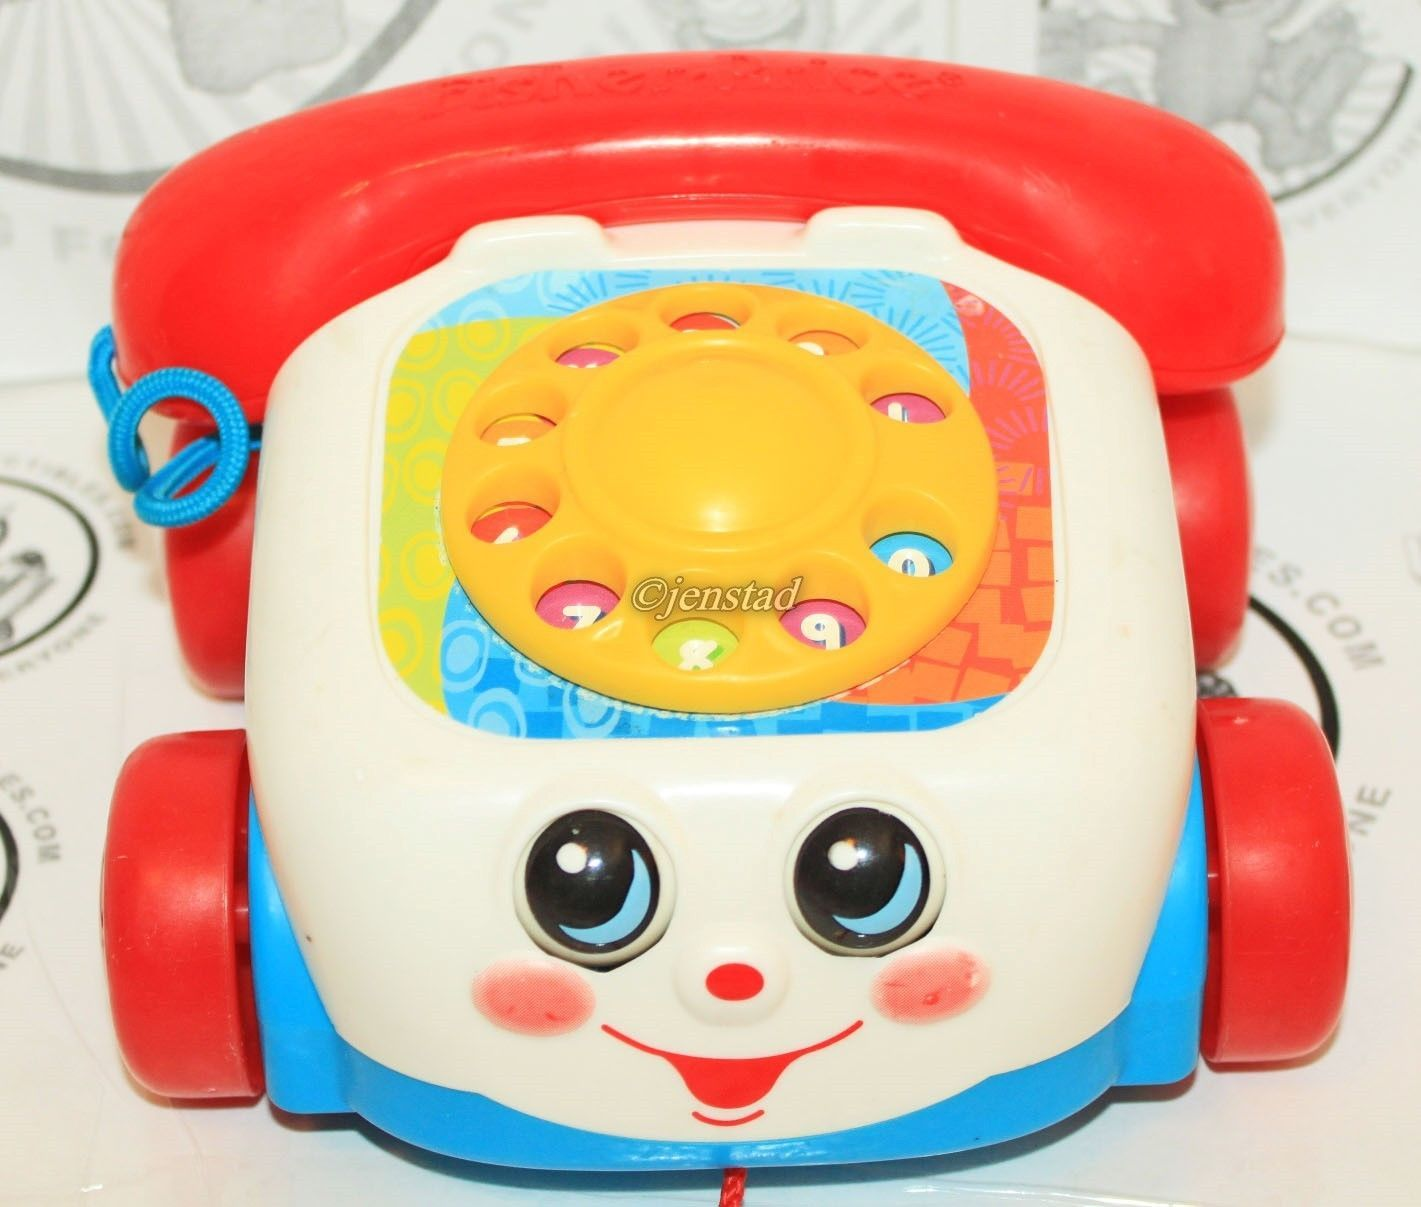 hight resolution of fisher price chatter telephone pull rotary color dial toy phone kids or toddler